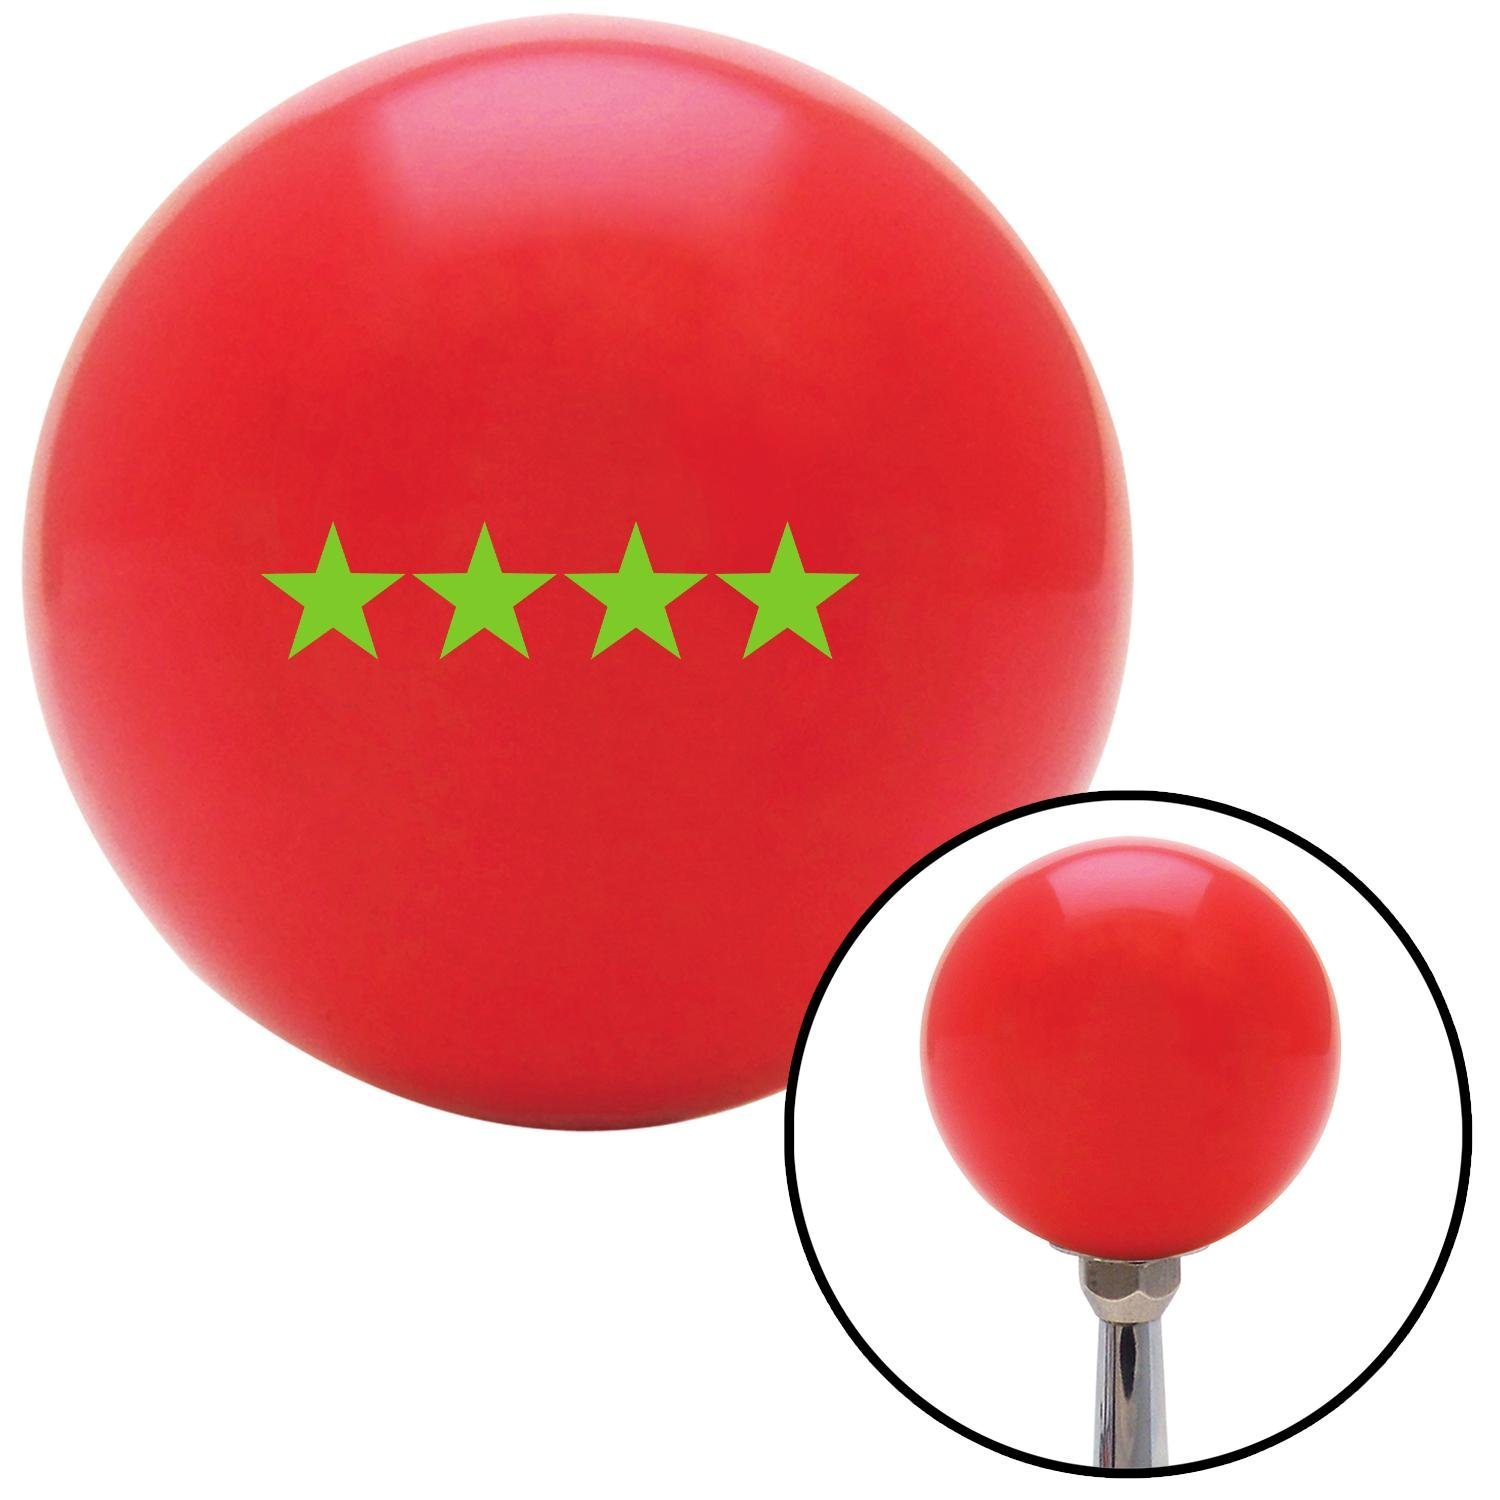 American Shifter 97988 Red Shift Knob with M16 x 1.5 Insert Green Officer 10 - Admiral